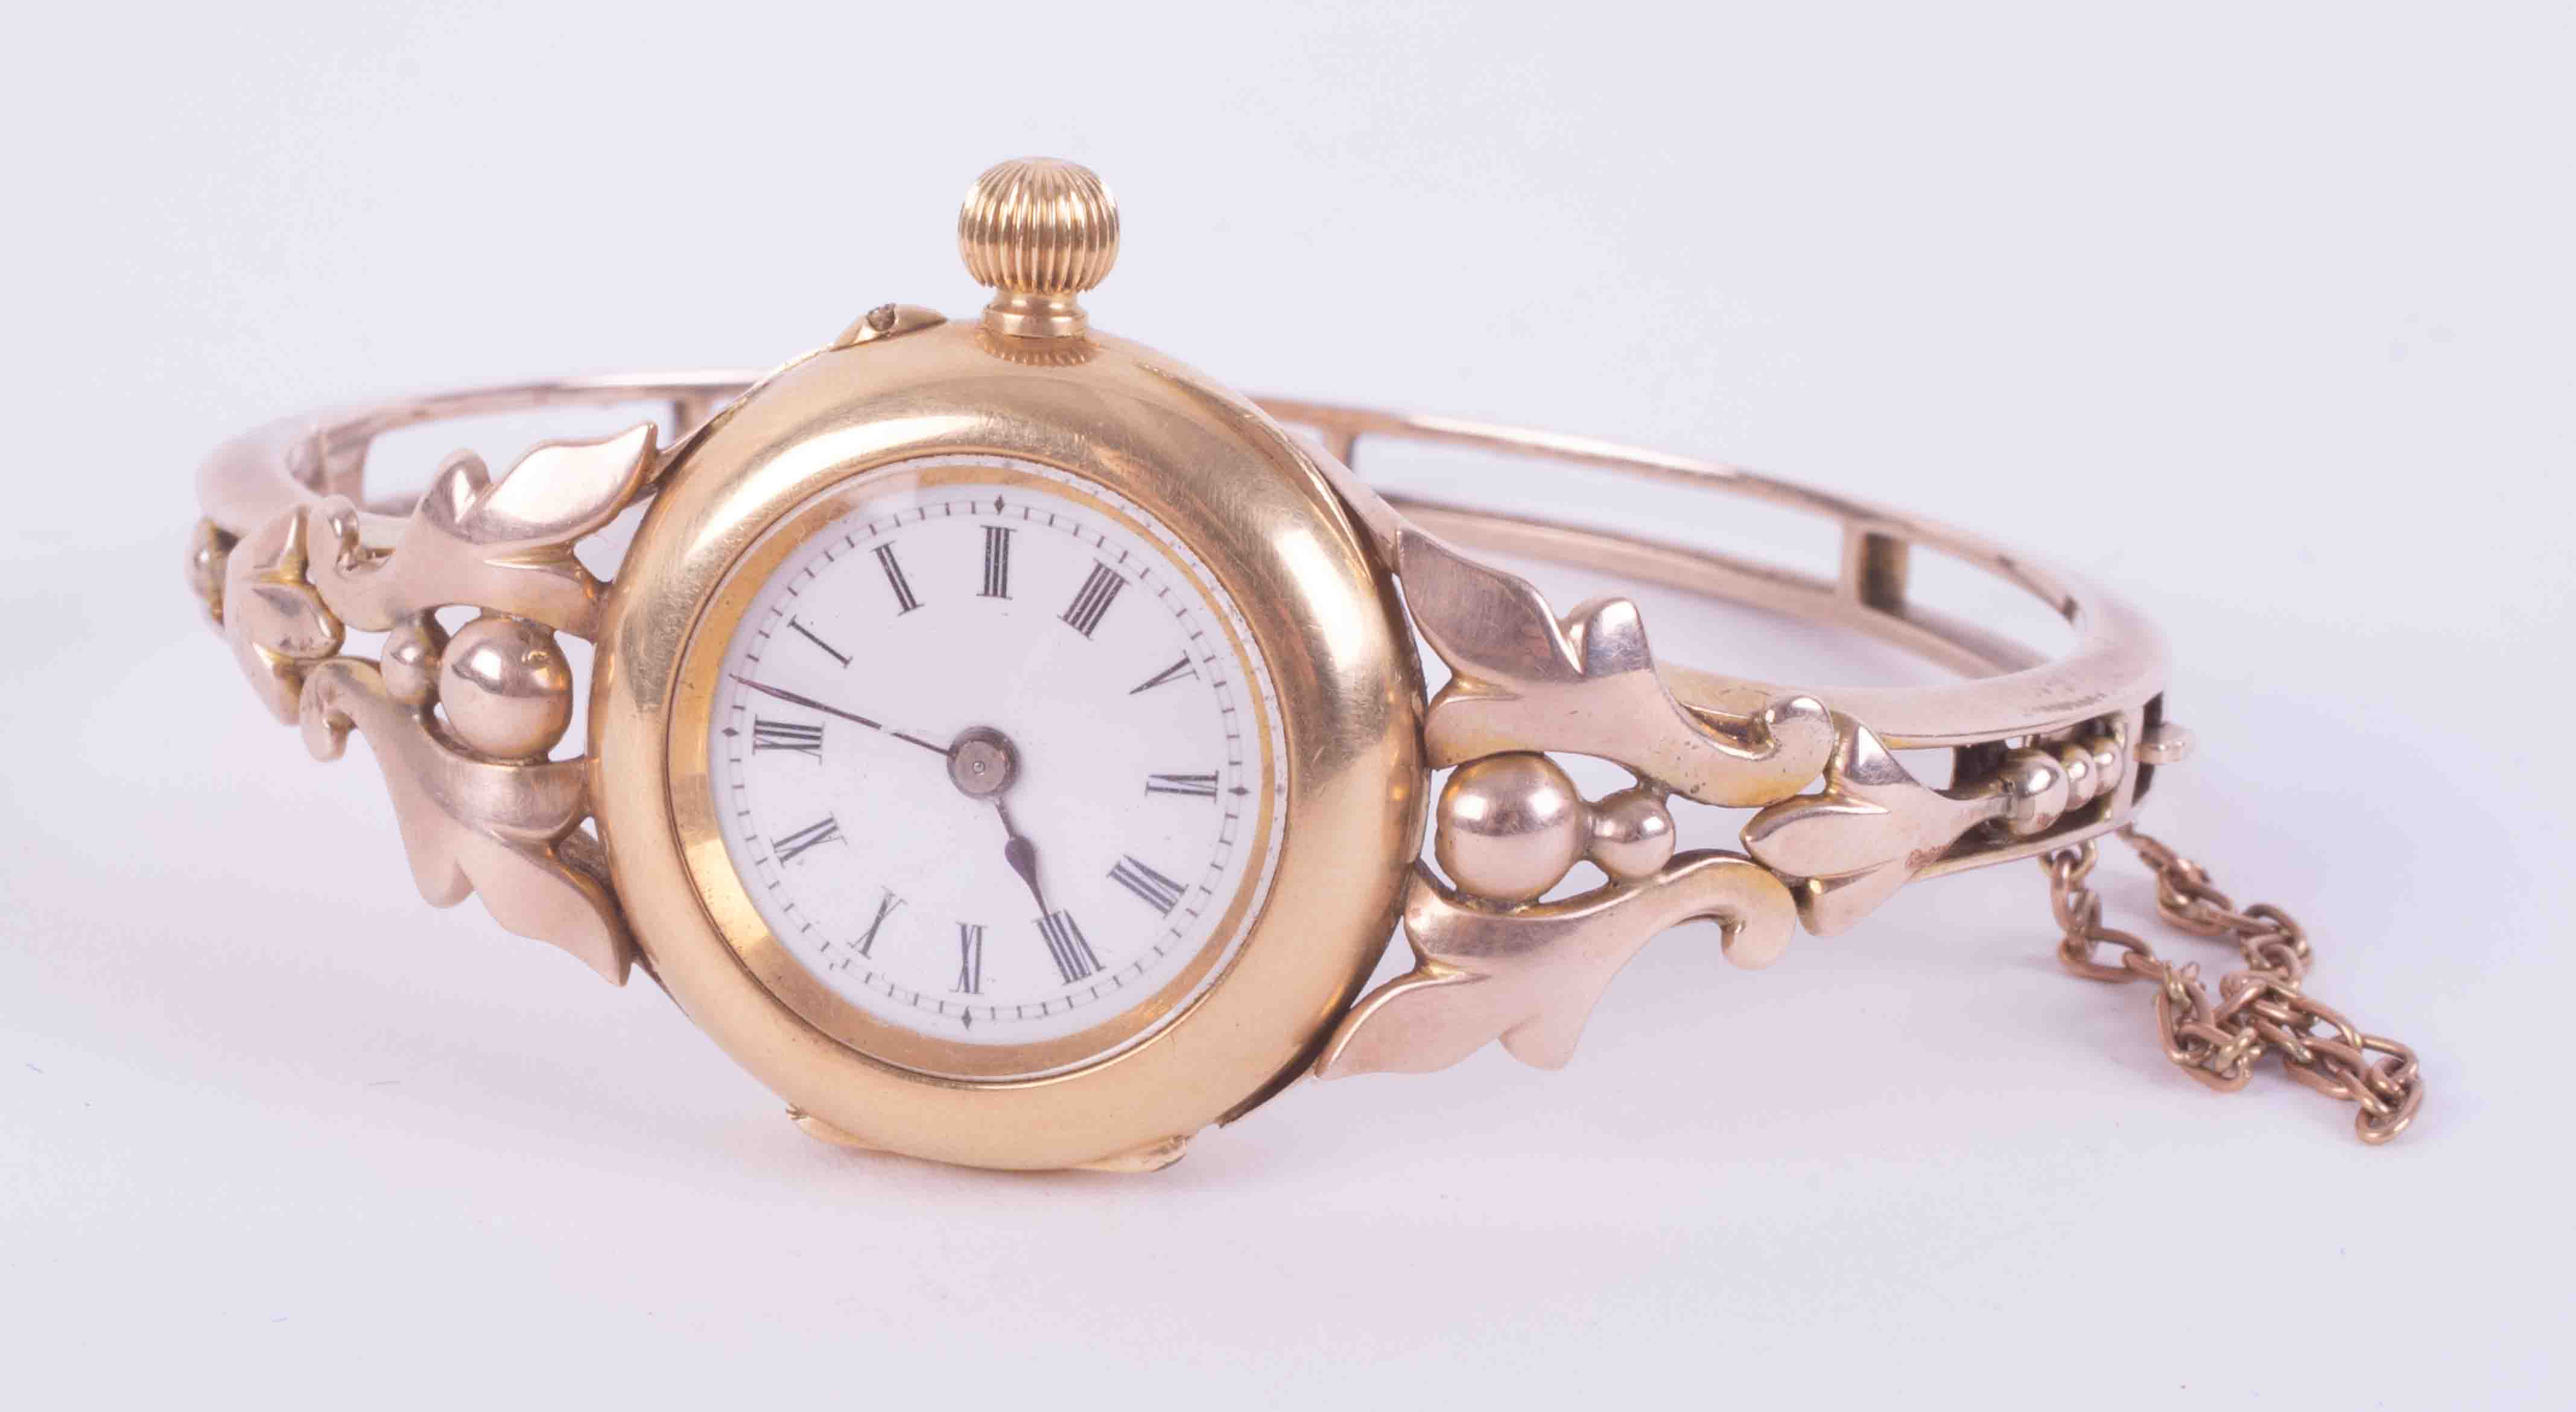 An antique 18ct & 9ct yellow & rose gold ornate bangle watch with push in clasp & safety chain, (